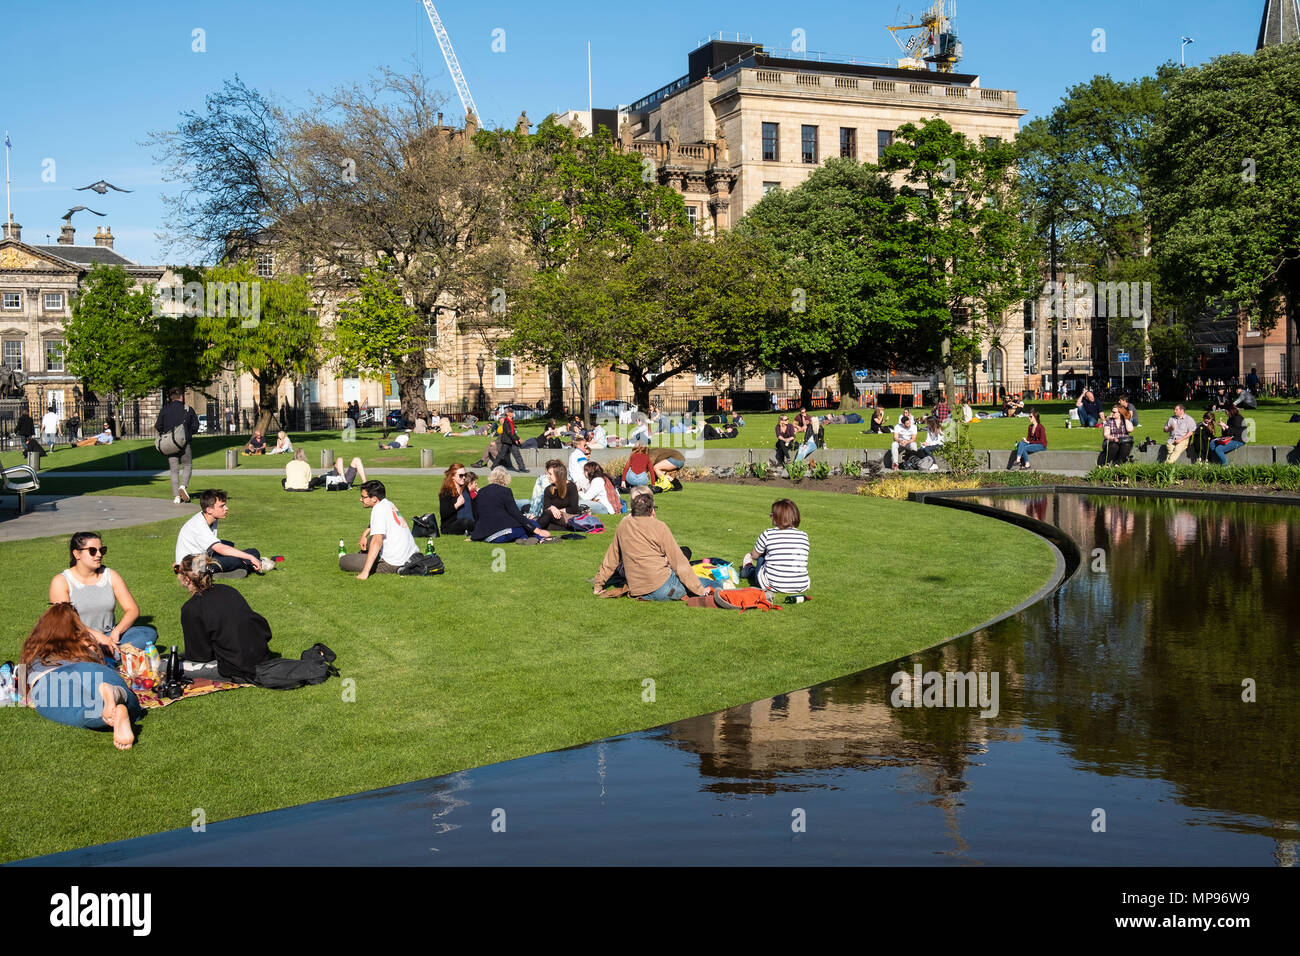 People sitting on grass in St Andrews Square in warm, sunny weather in Edinburgh, Scotland, United Kingdom,UK - Stock Image